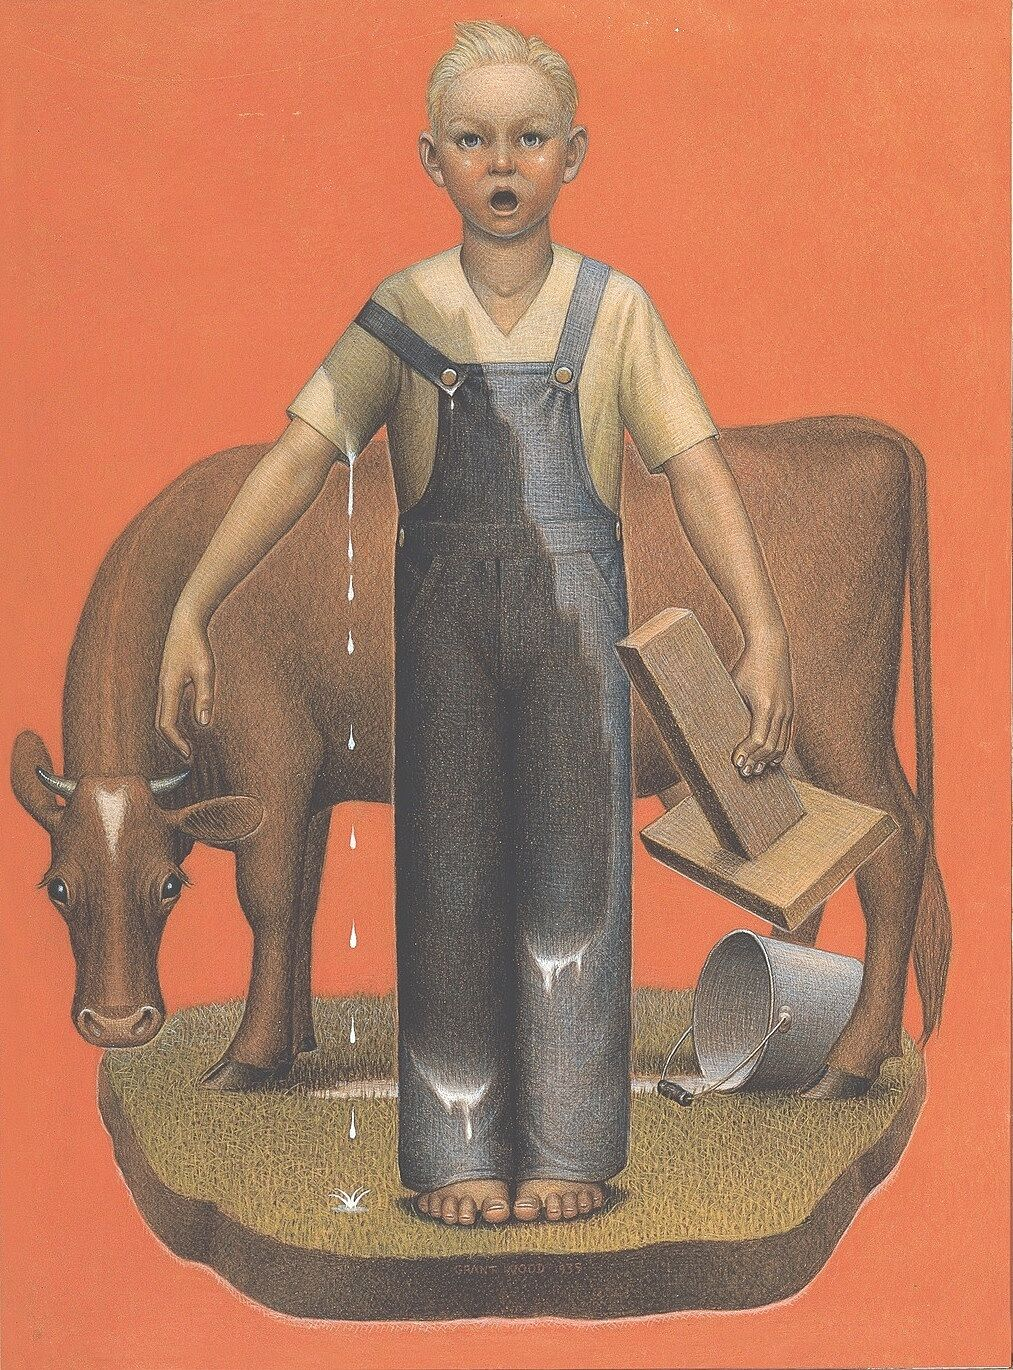 Boy standing in front of a cow with a spilt milking bucket behind him and milk on his clothing.